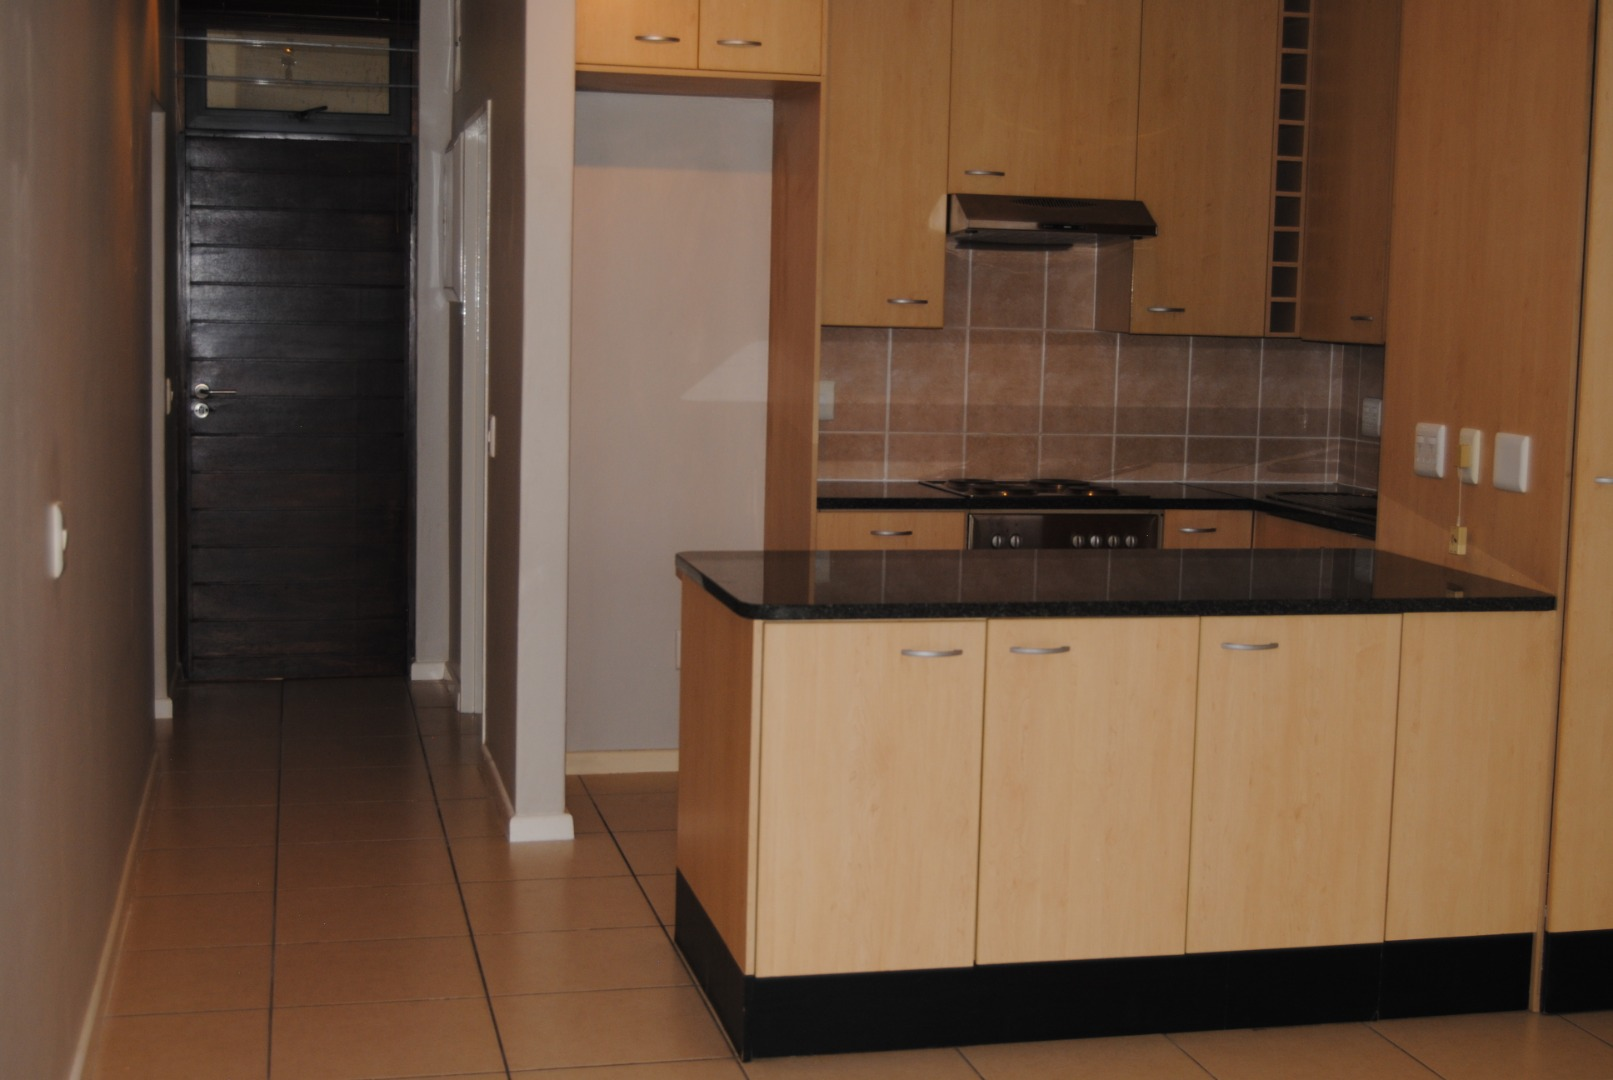 2 Bedroom Apartment / Flat To Rent in Bryanston